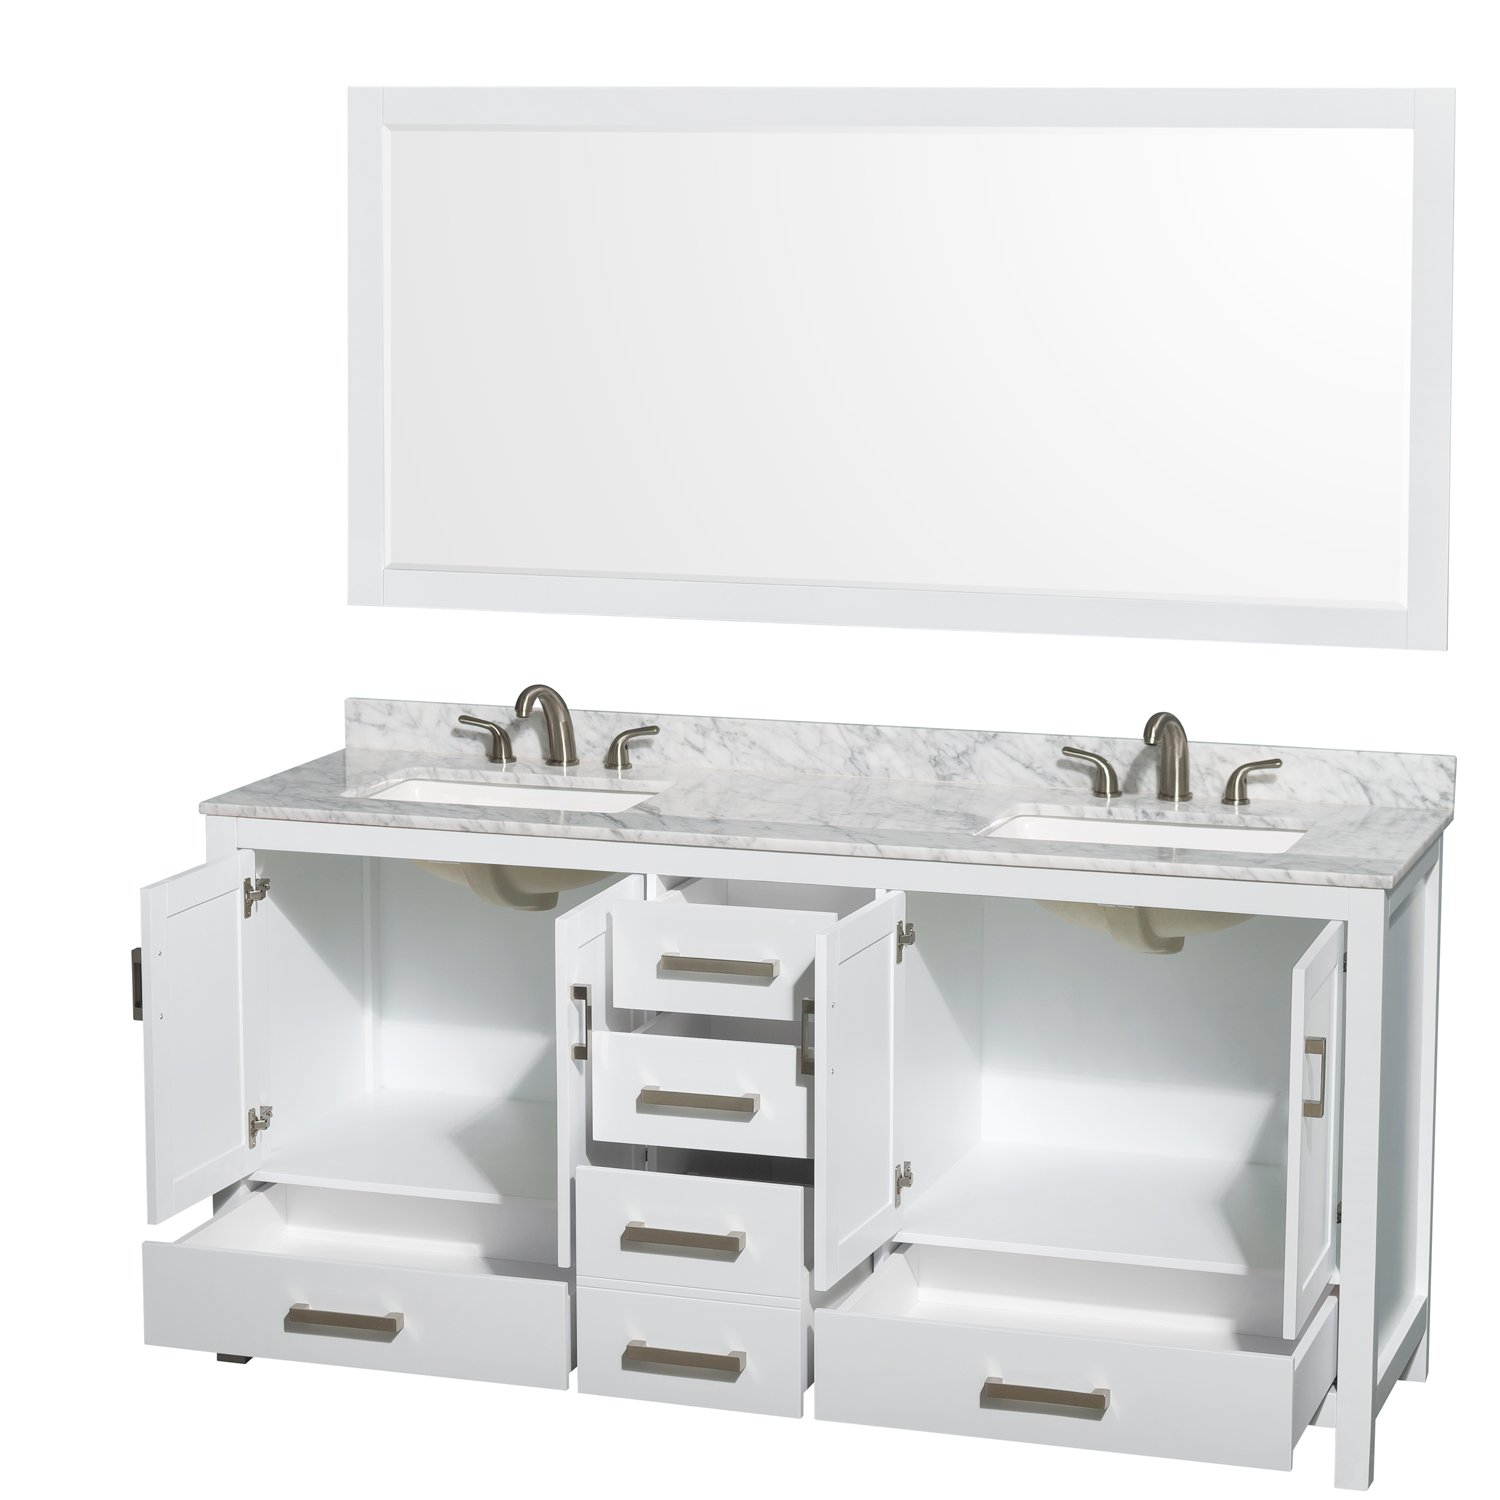 sheffield 72 double bathroom vanity in white with white carrara marble countertop undermount square sinks 3 hole and 70 mirror